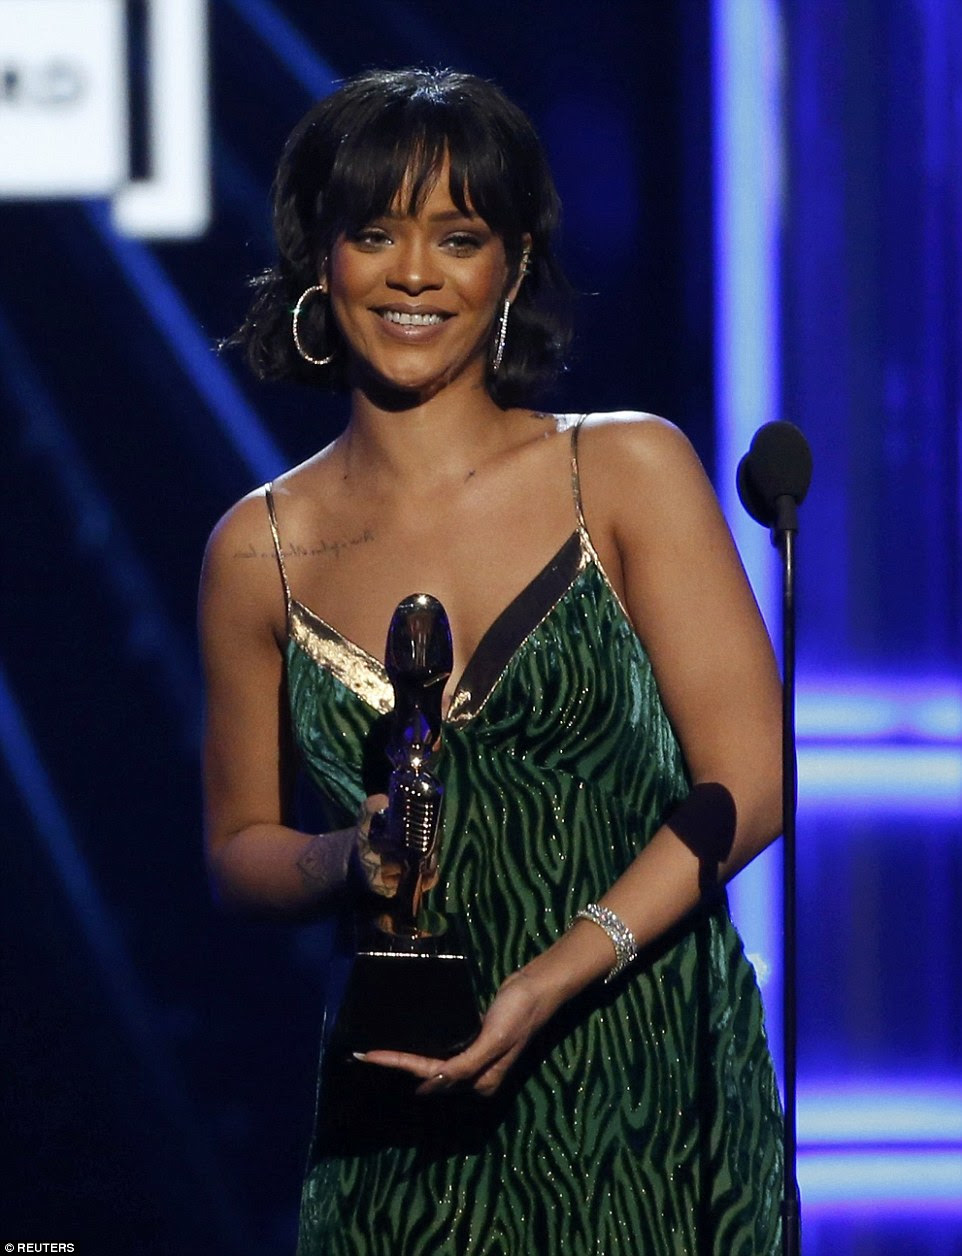 Big night: Rihanna took home the Billboard Chart Achievement Award at the 2016 Billboard Music Awards at T-Mobile Arena in Las Vegas, Nevada on Sunday night